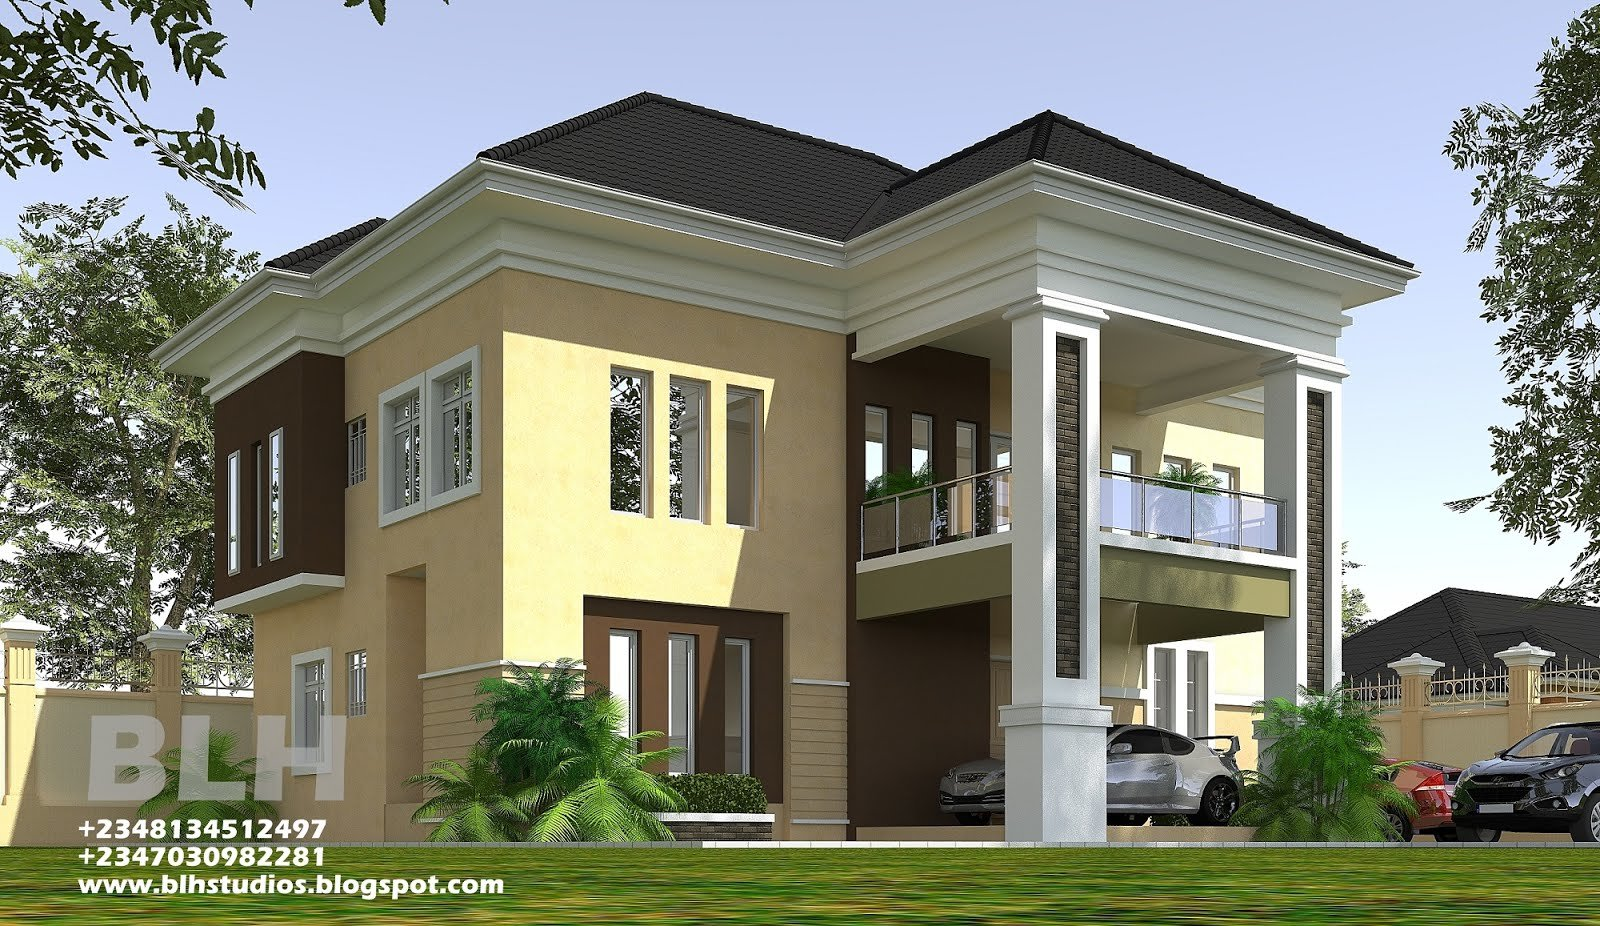 Best Architectural Designs By Blacklakehouse 2 Bedroom With Pictures